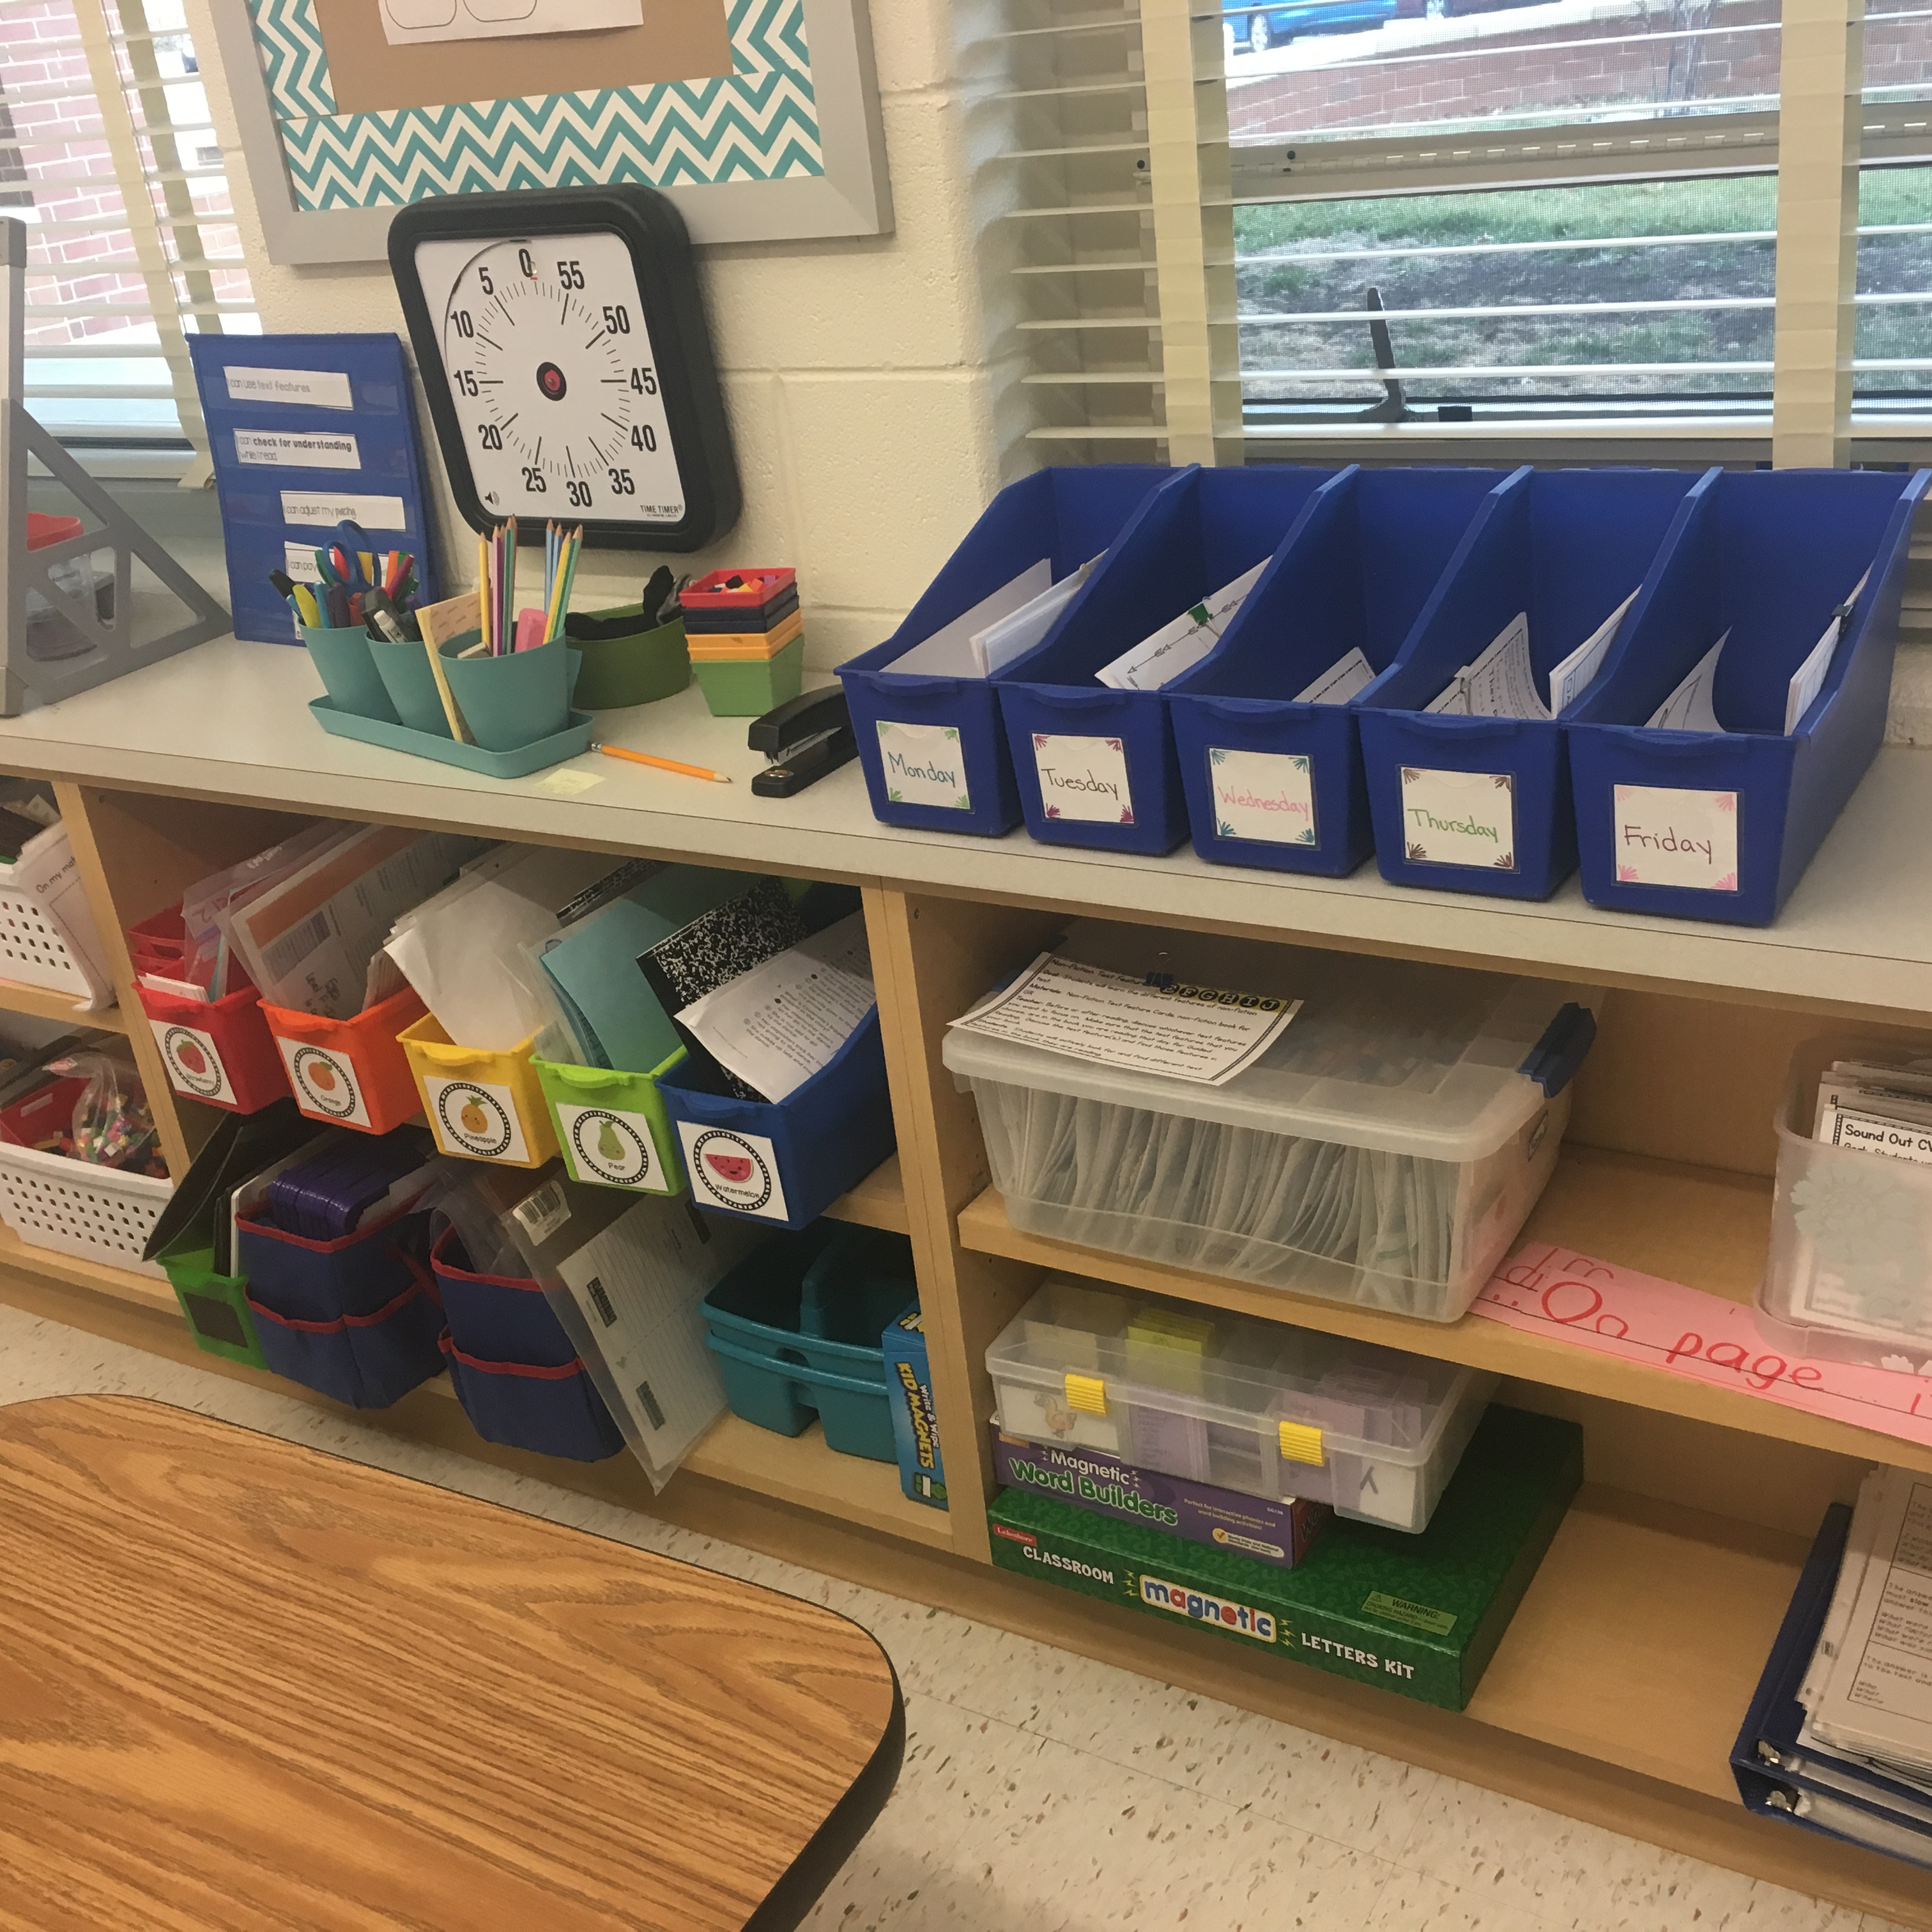 classroom with blue bins and rainbo color bins used to organize papers.